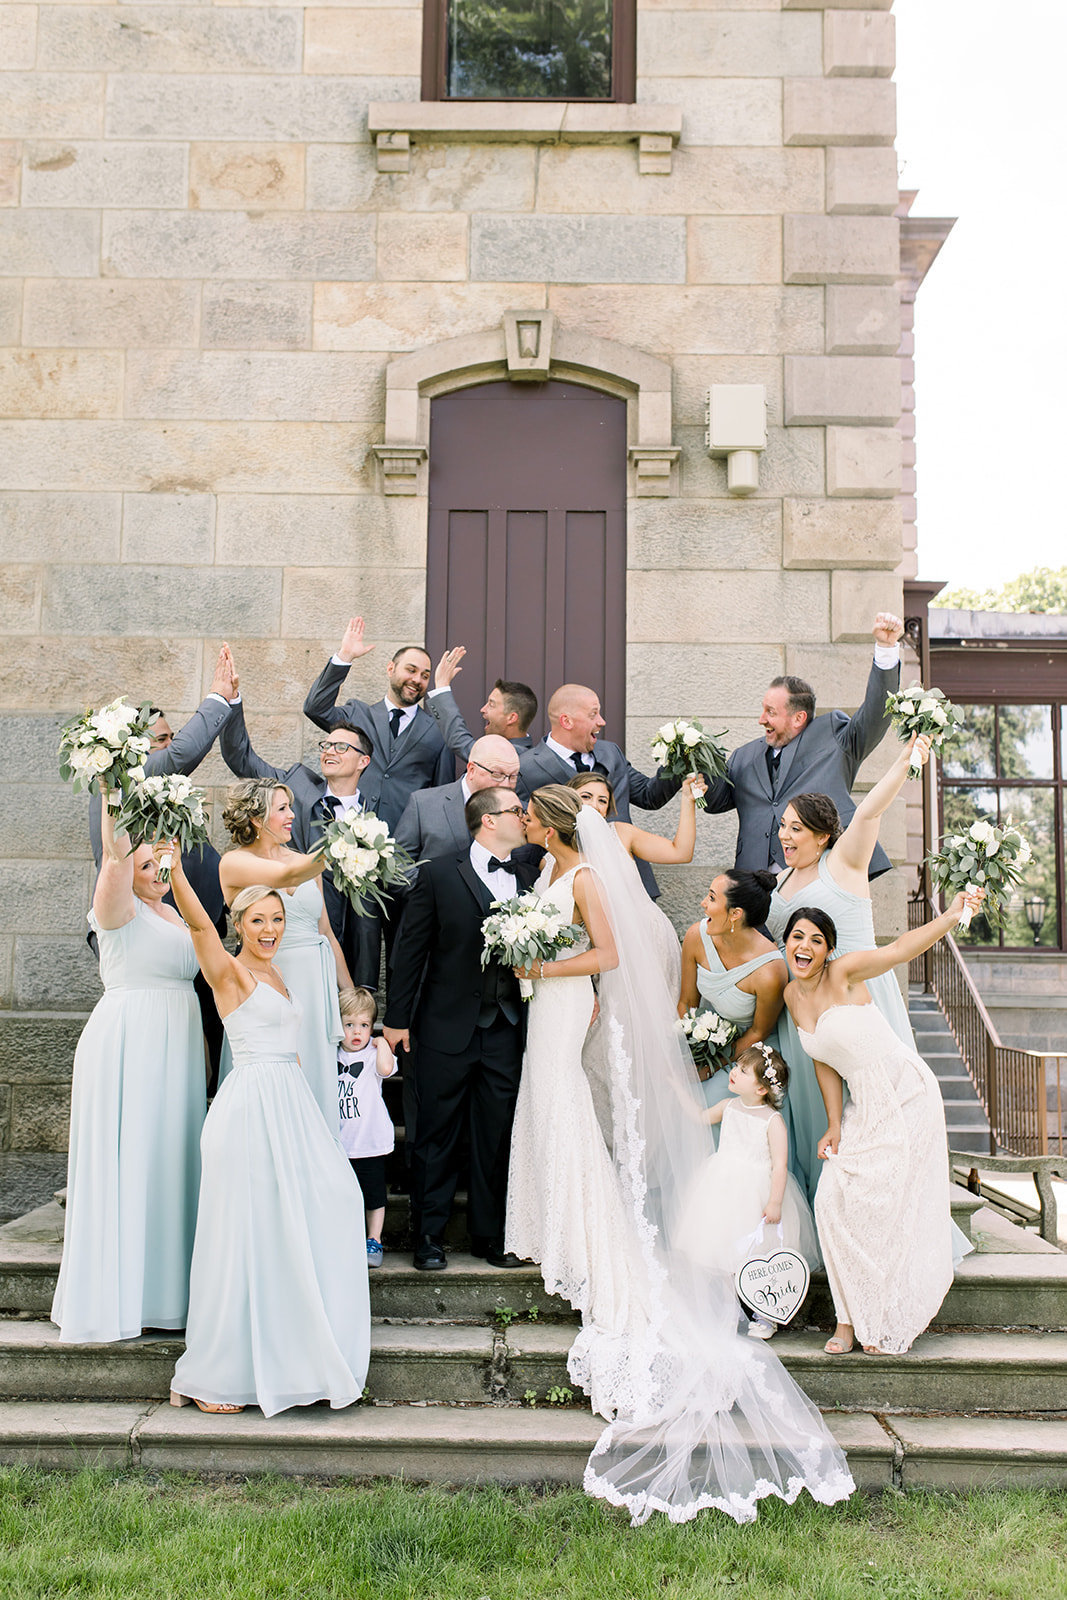 senecaryanco_scranton_cultural_center_scranton_university_wedding-119_websize